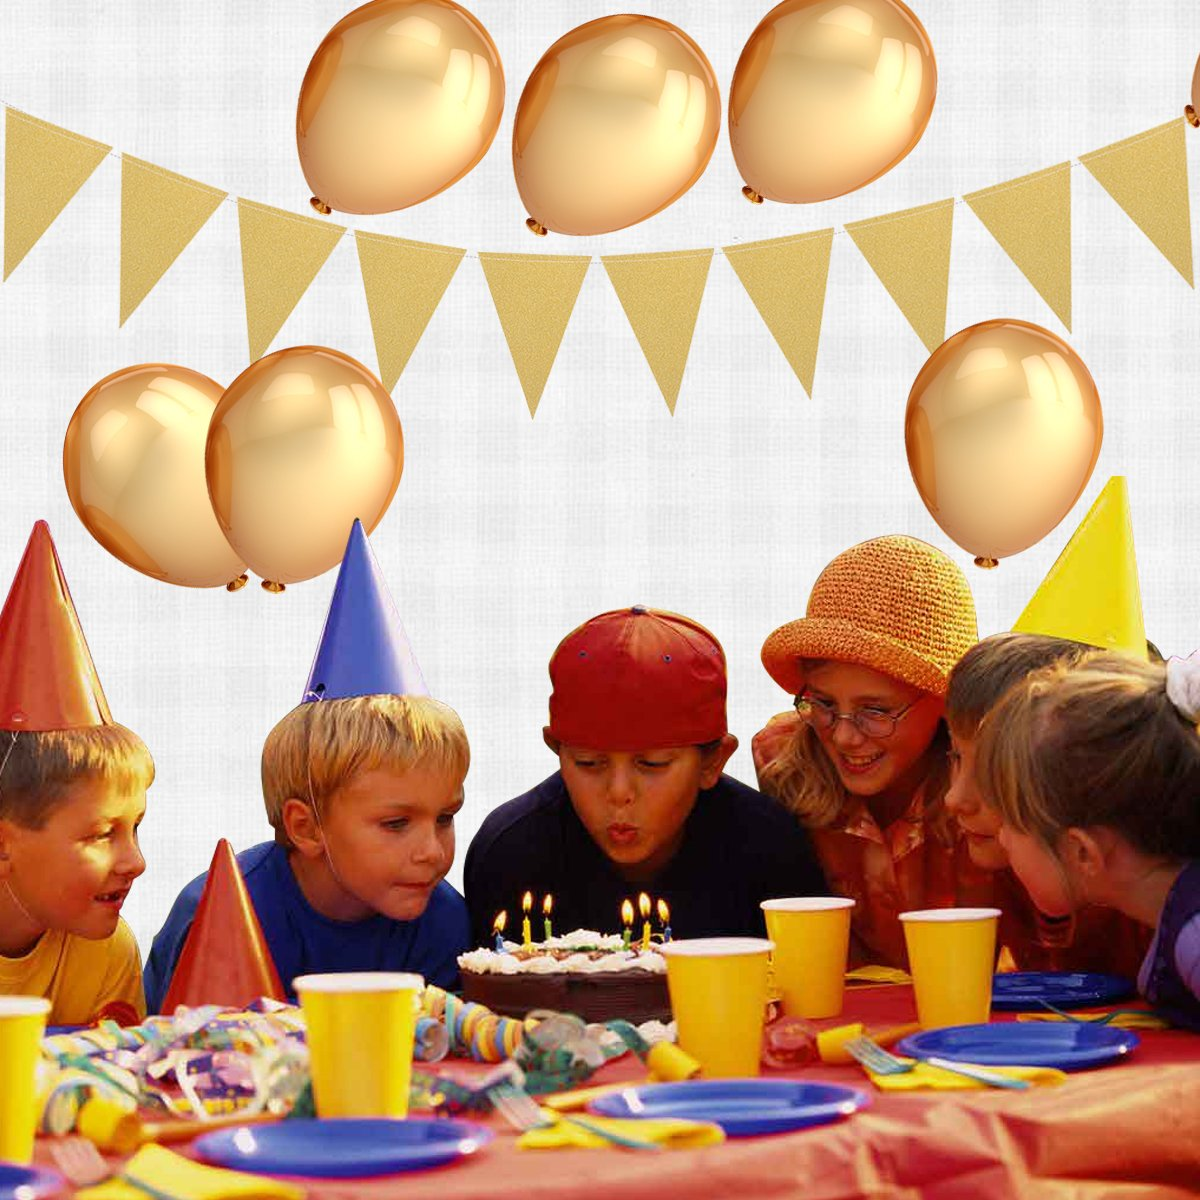 Gold Balloons Decorations ,100 Pcs 12 inches Gold Color Latex Party Balloons and Gold Paper Triangle Flags & Circle Dots and Twinkle Star Garland Hanging Decorations